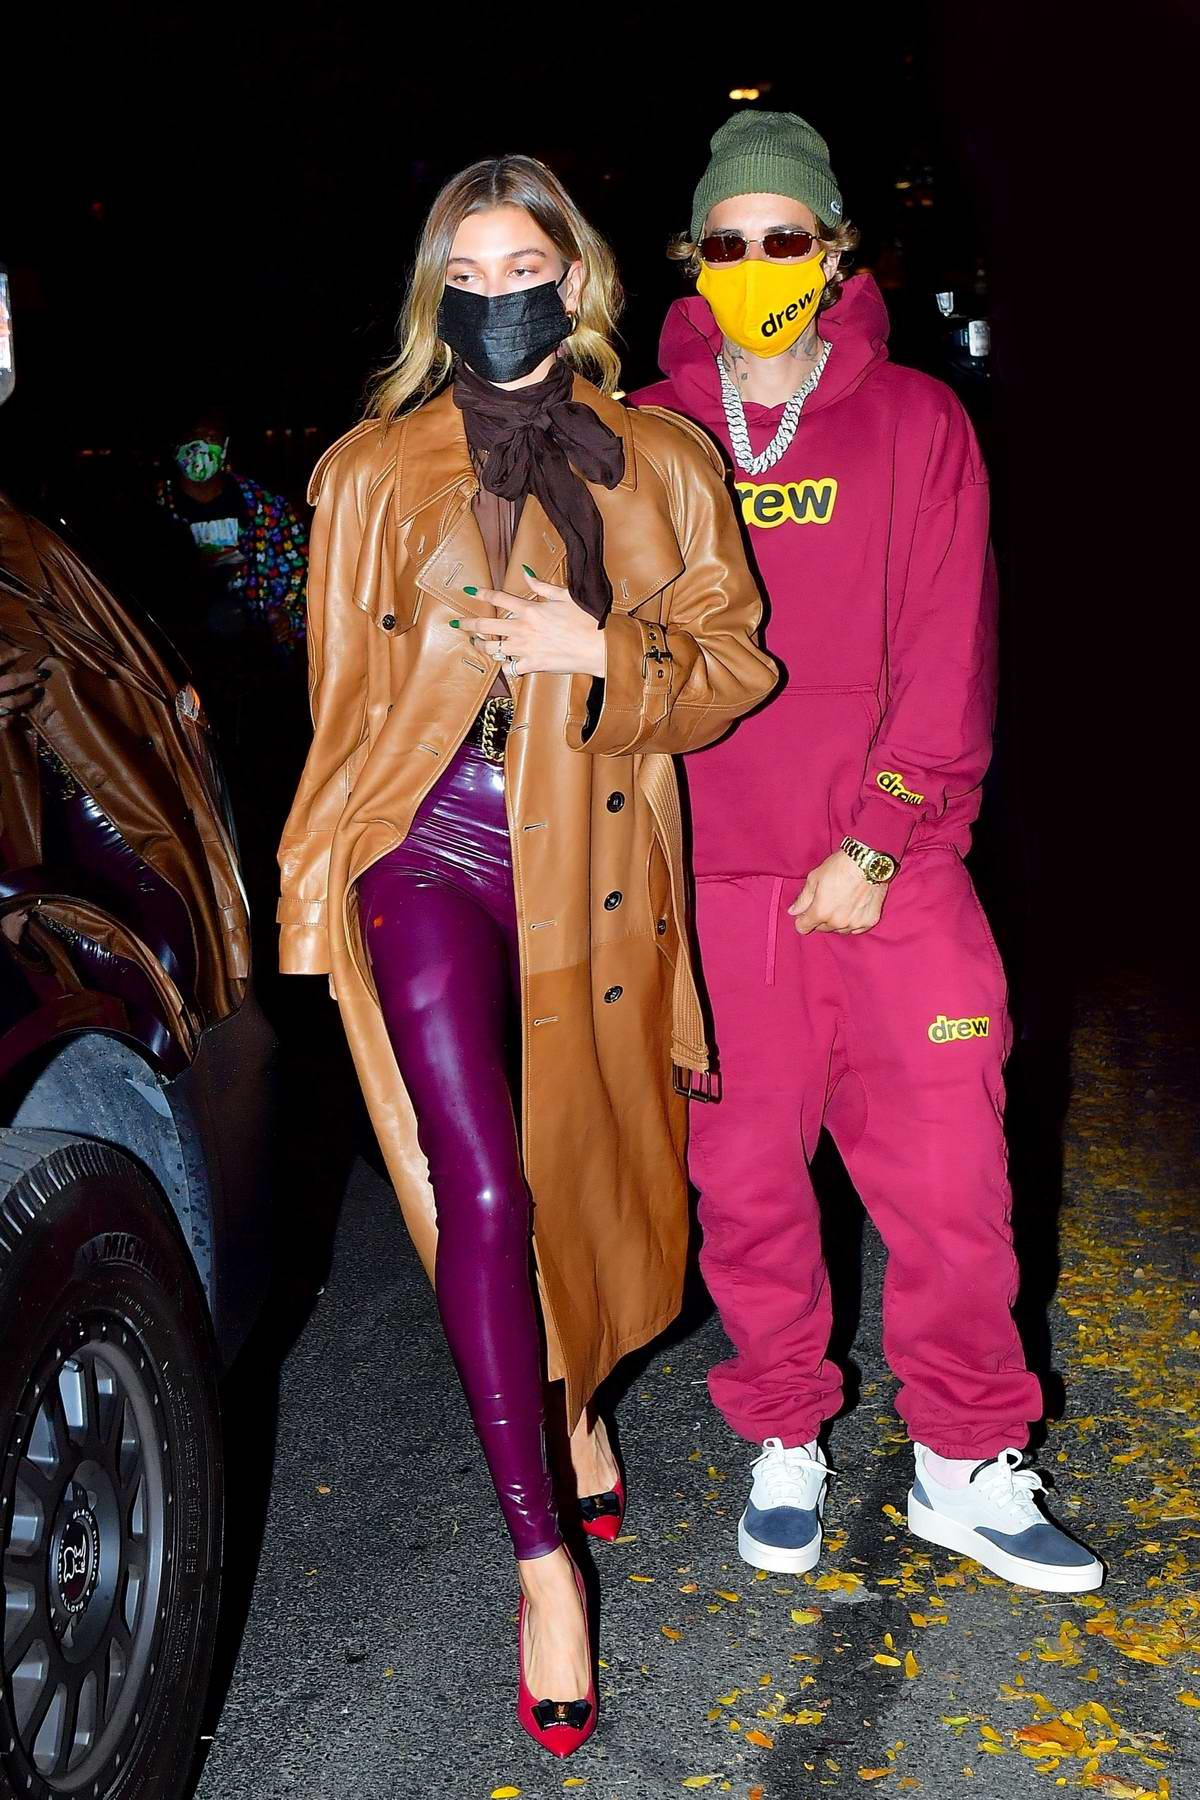 Hailey Bieber and Justin Bieber step out in colorful outfits for dinner in New York City